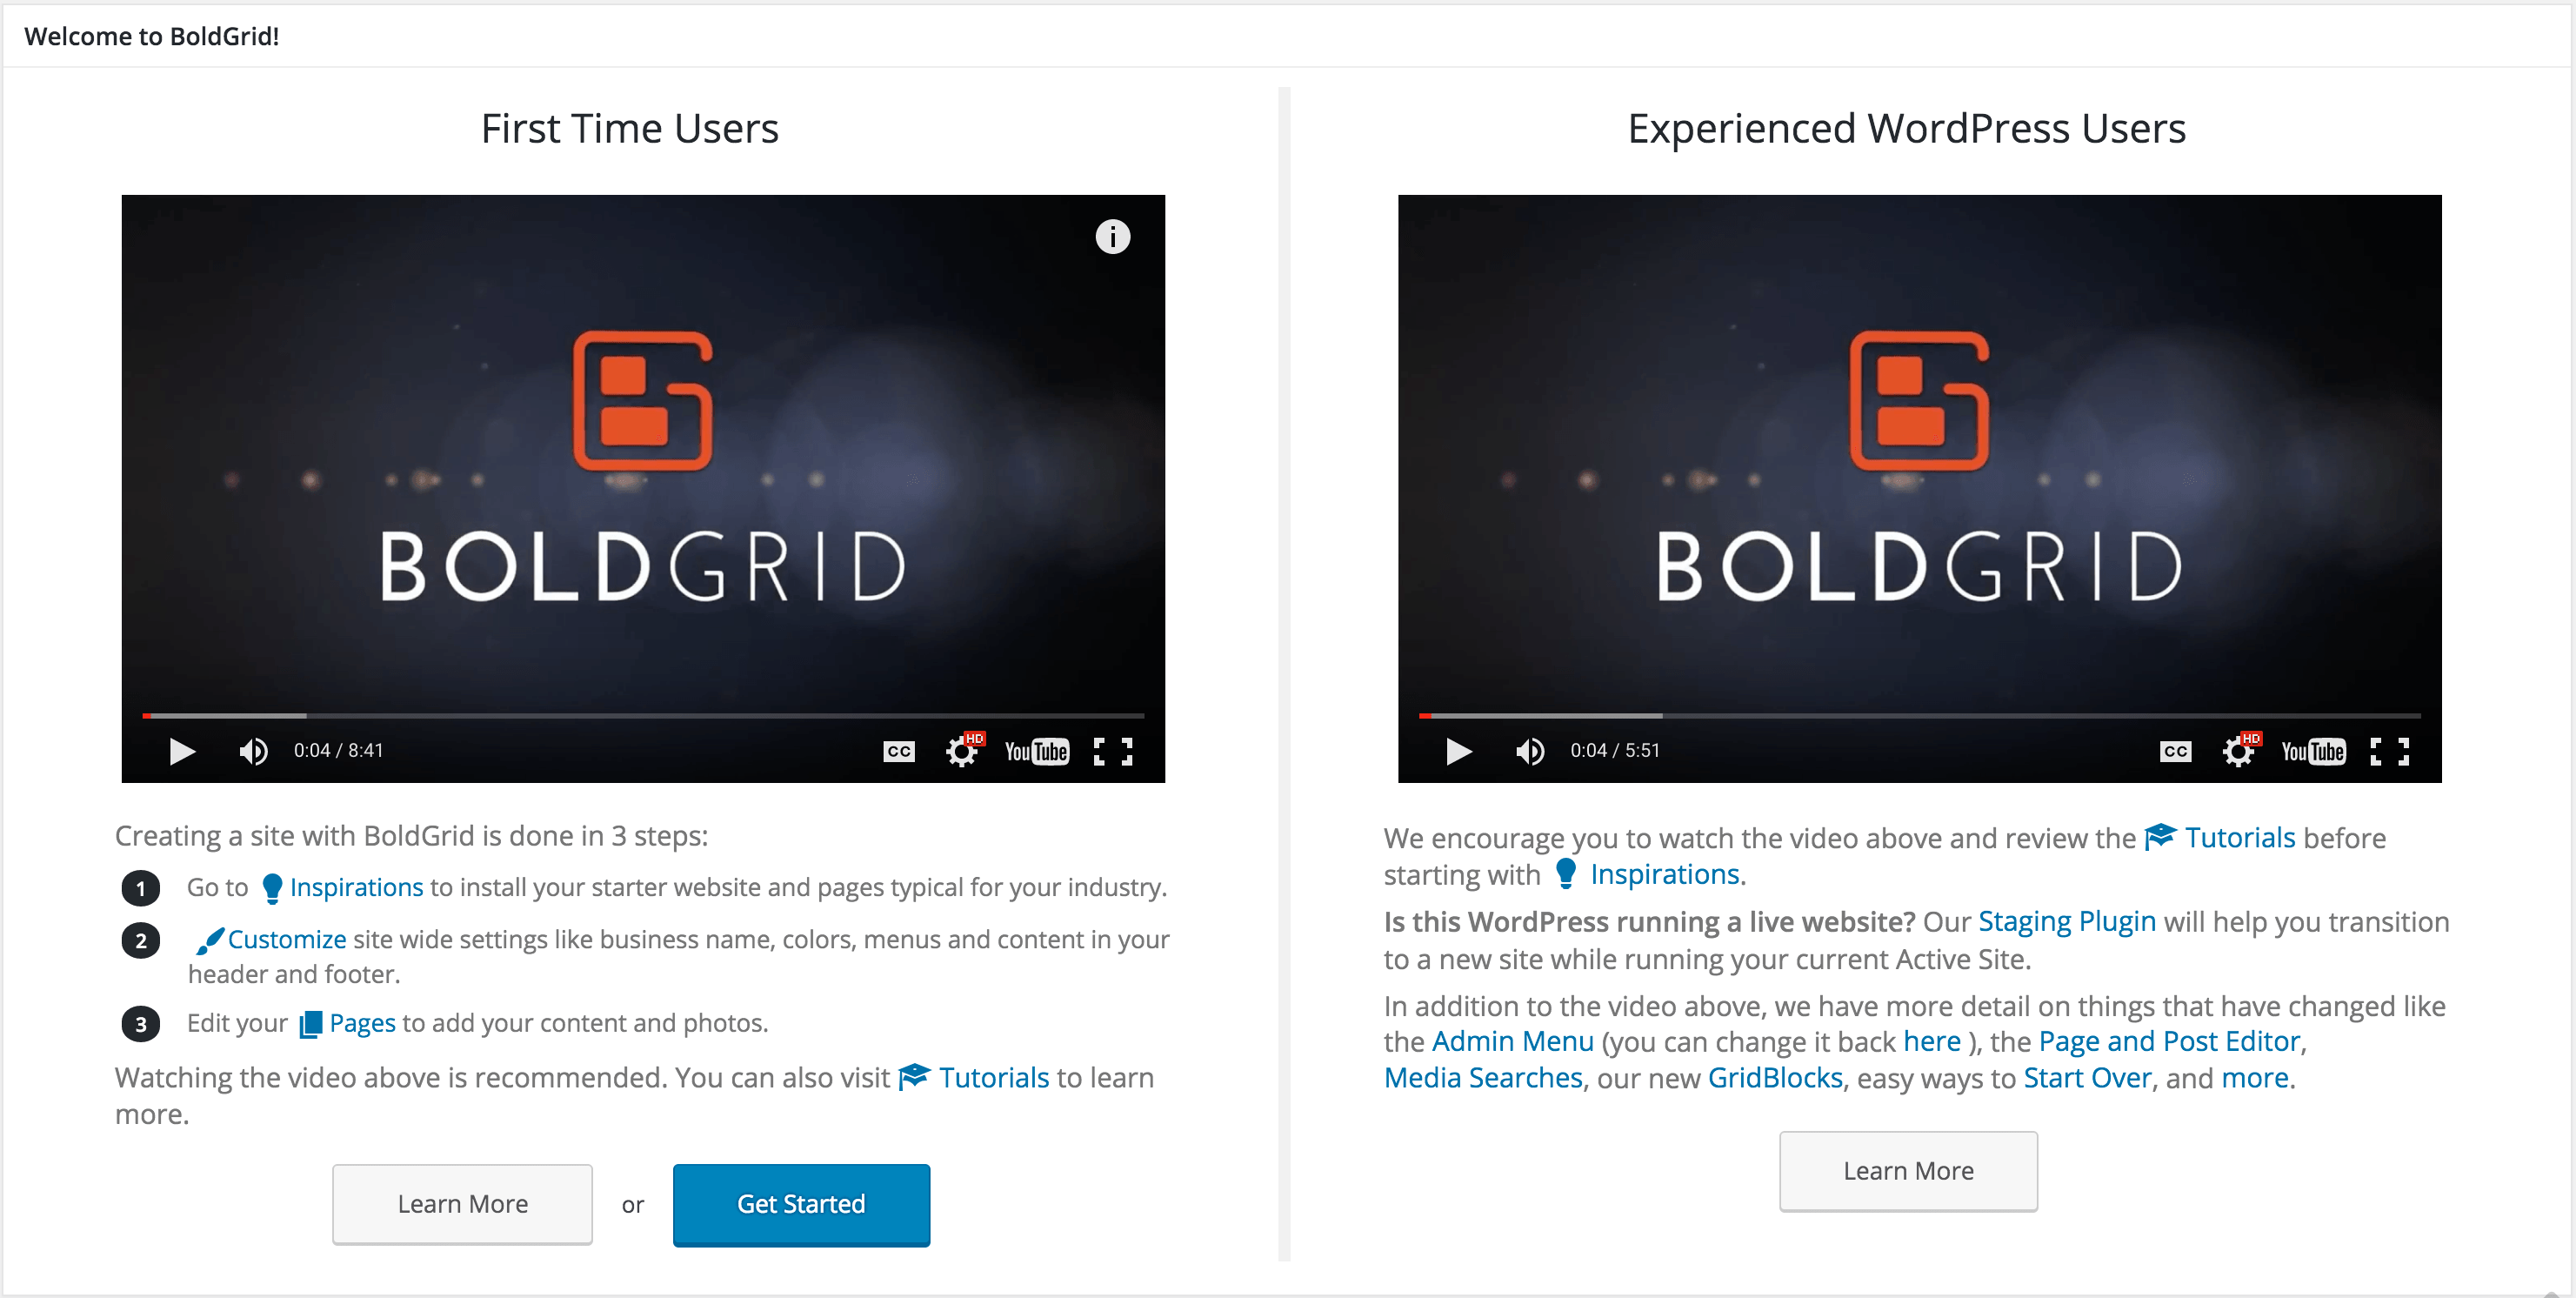 welcome-to-boldgrid